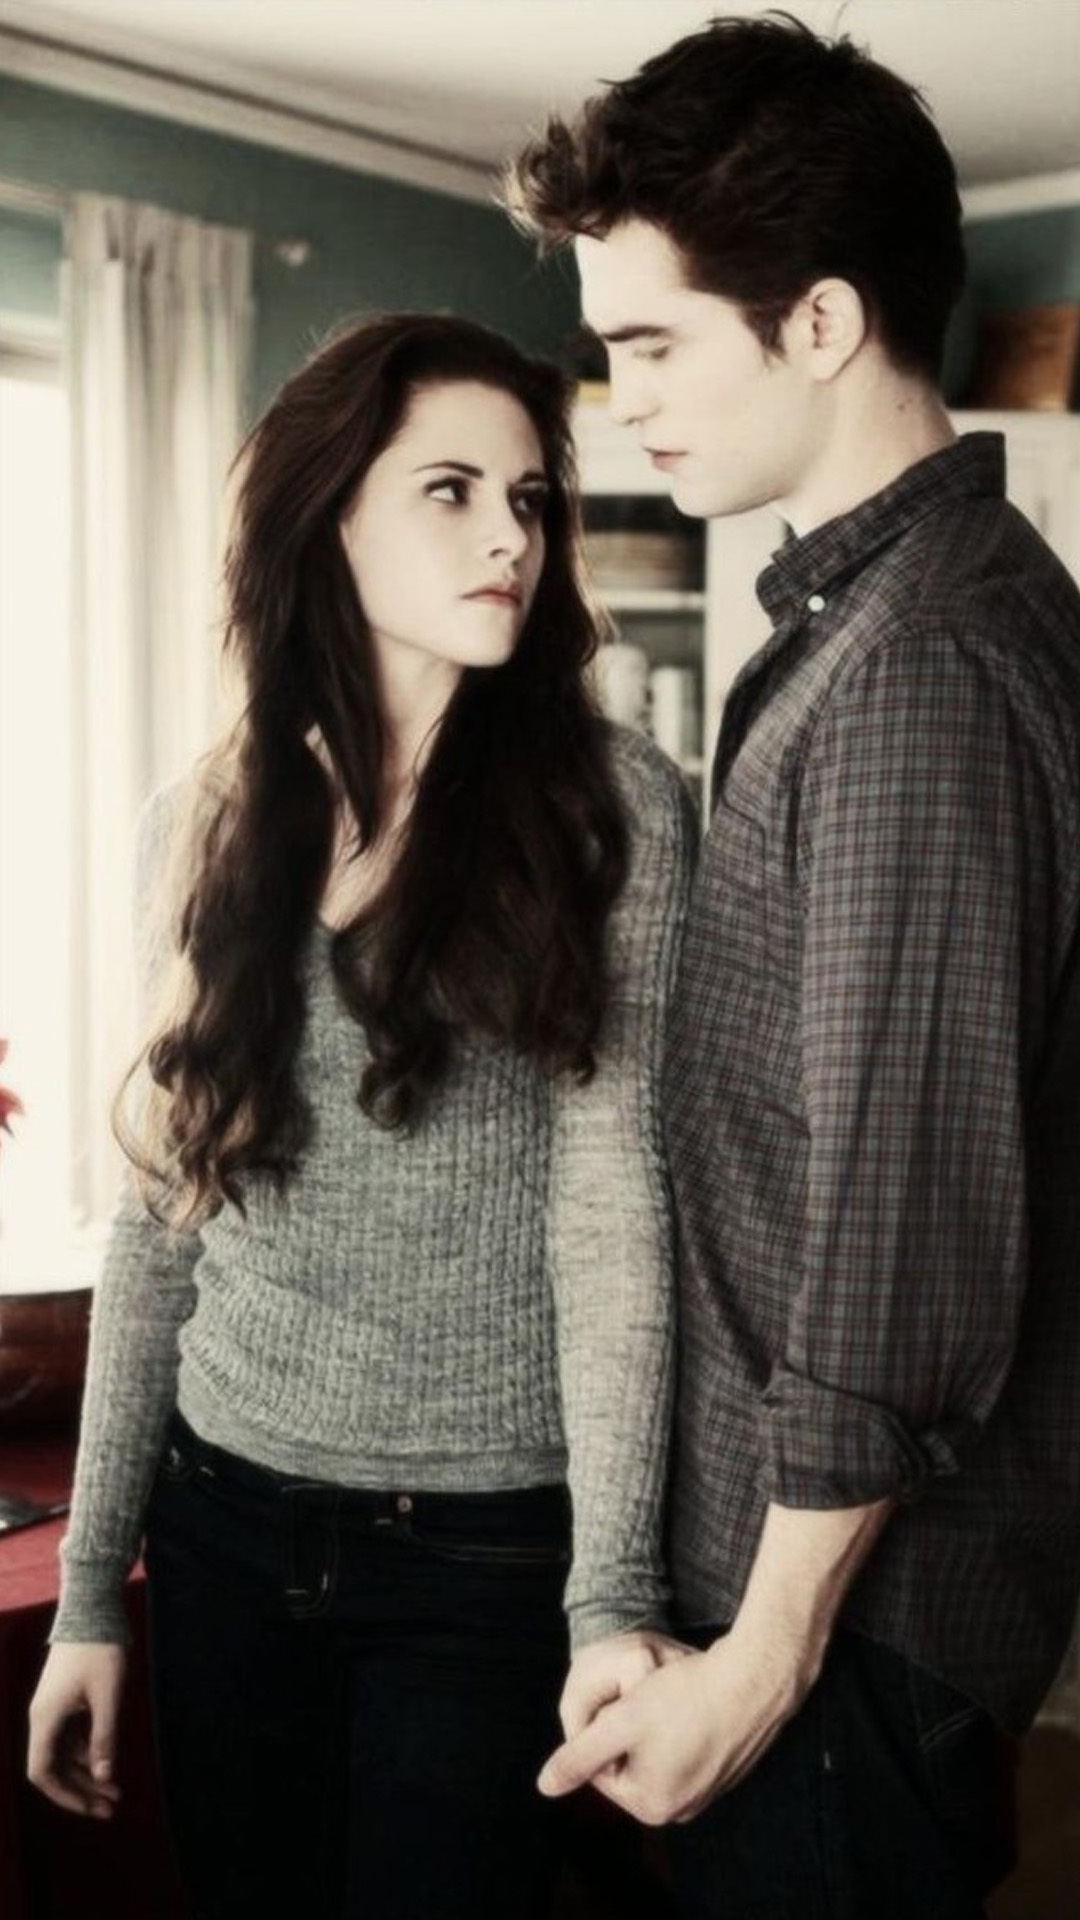 Twilight saga 3 wallpapers for iphone - Twilight wallpaper for iphone ...